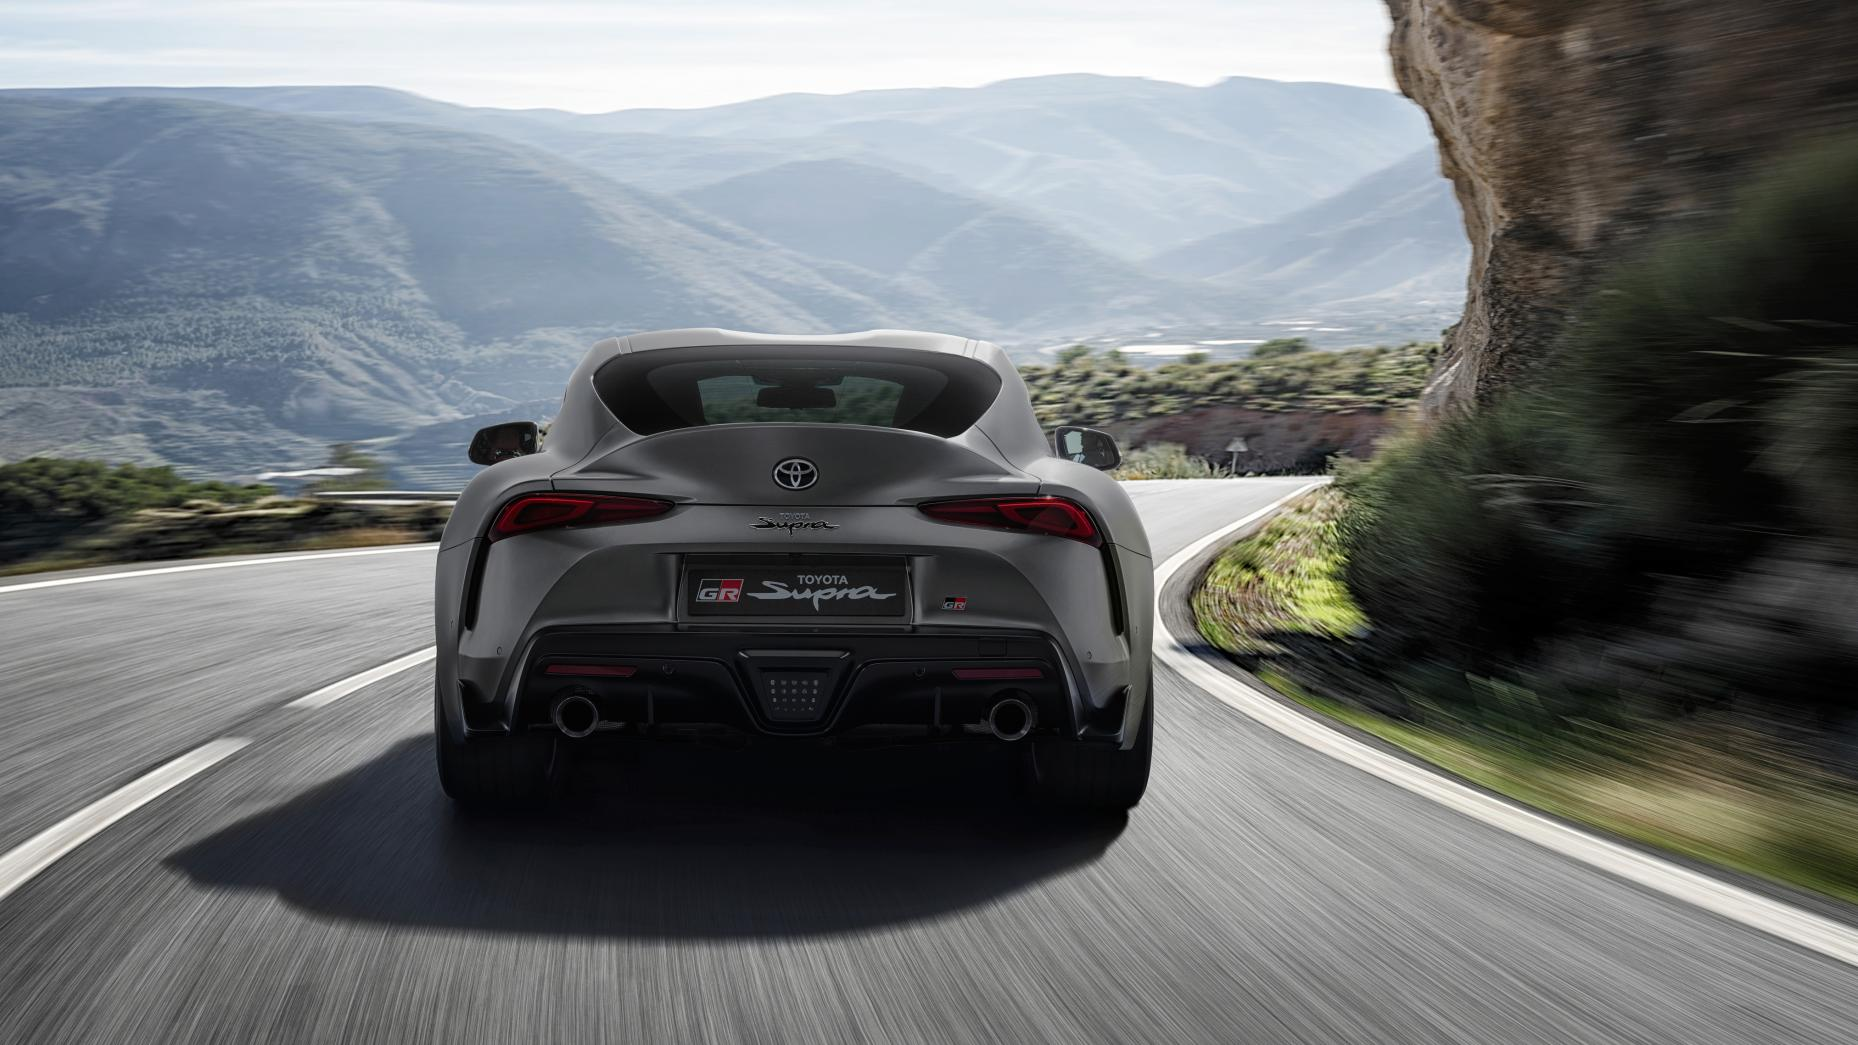 topgear five things we would do if tuning the new toyota supra. Black Bedroom Furniture Sets. Home Design Ideas